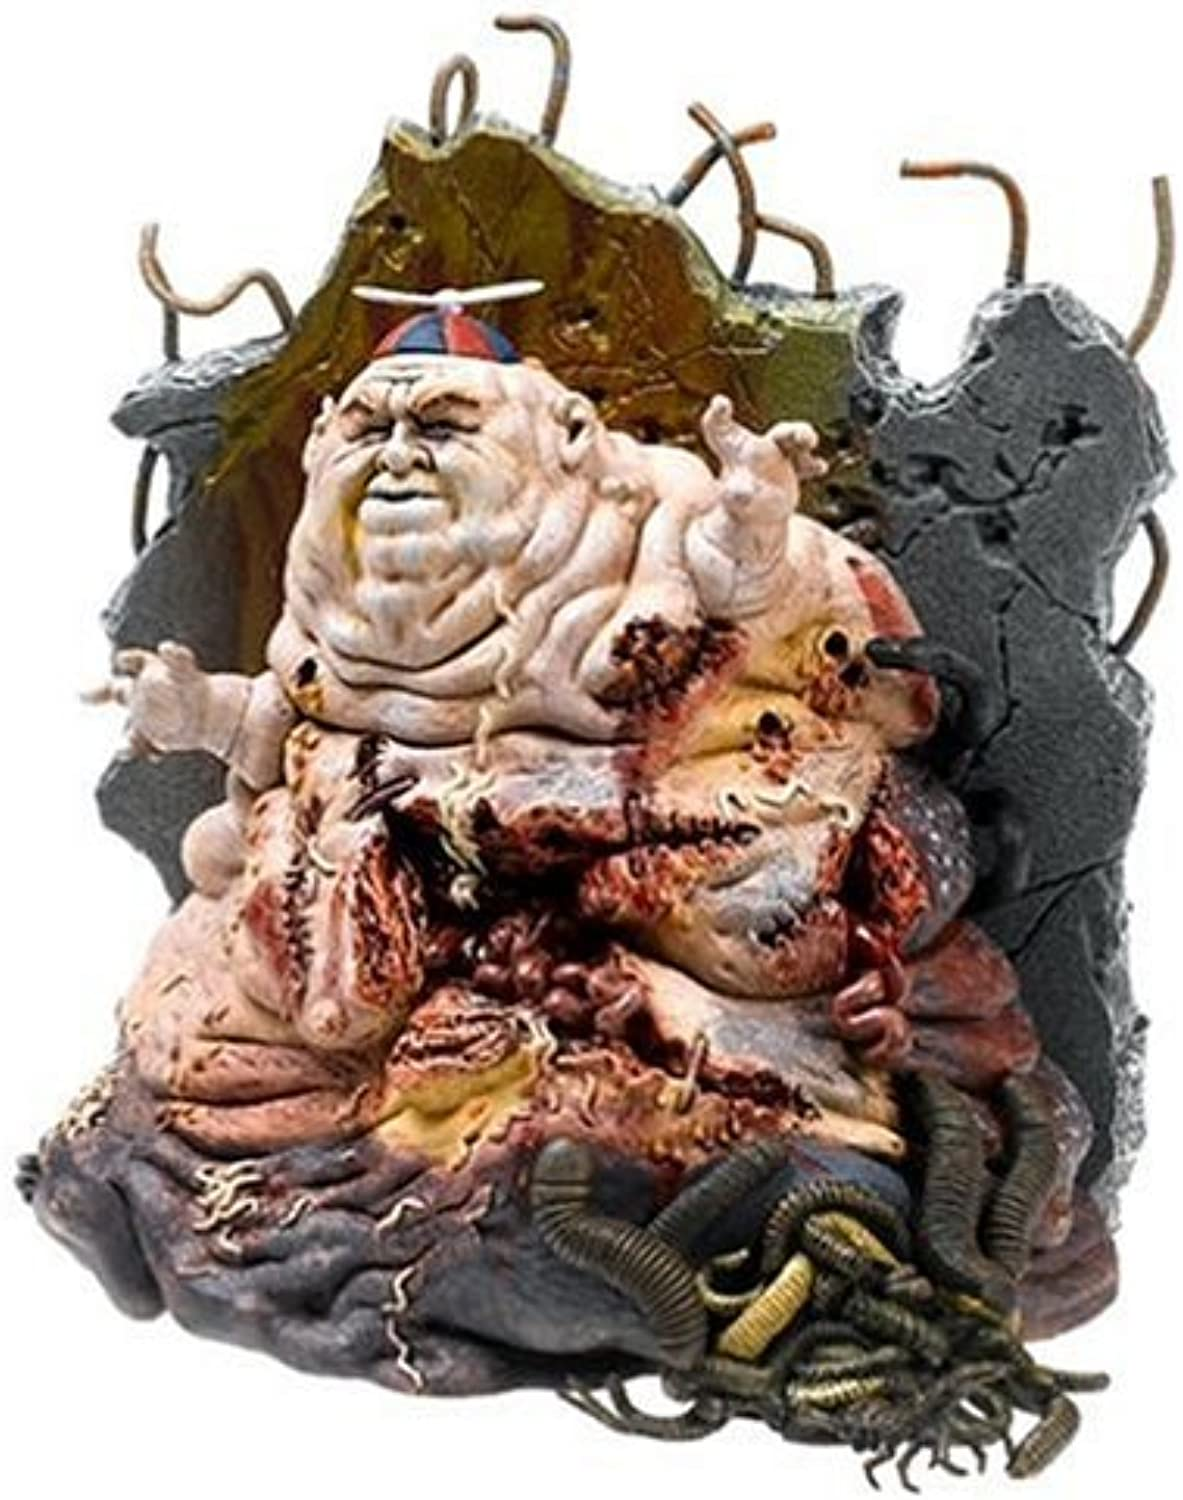 Mcfarlane Monsters Twisted Fairy Tales  Humpy Dumpty